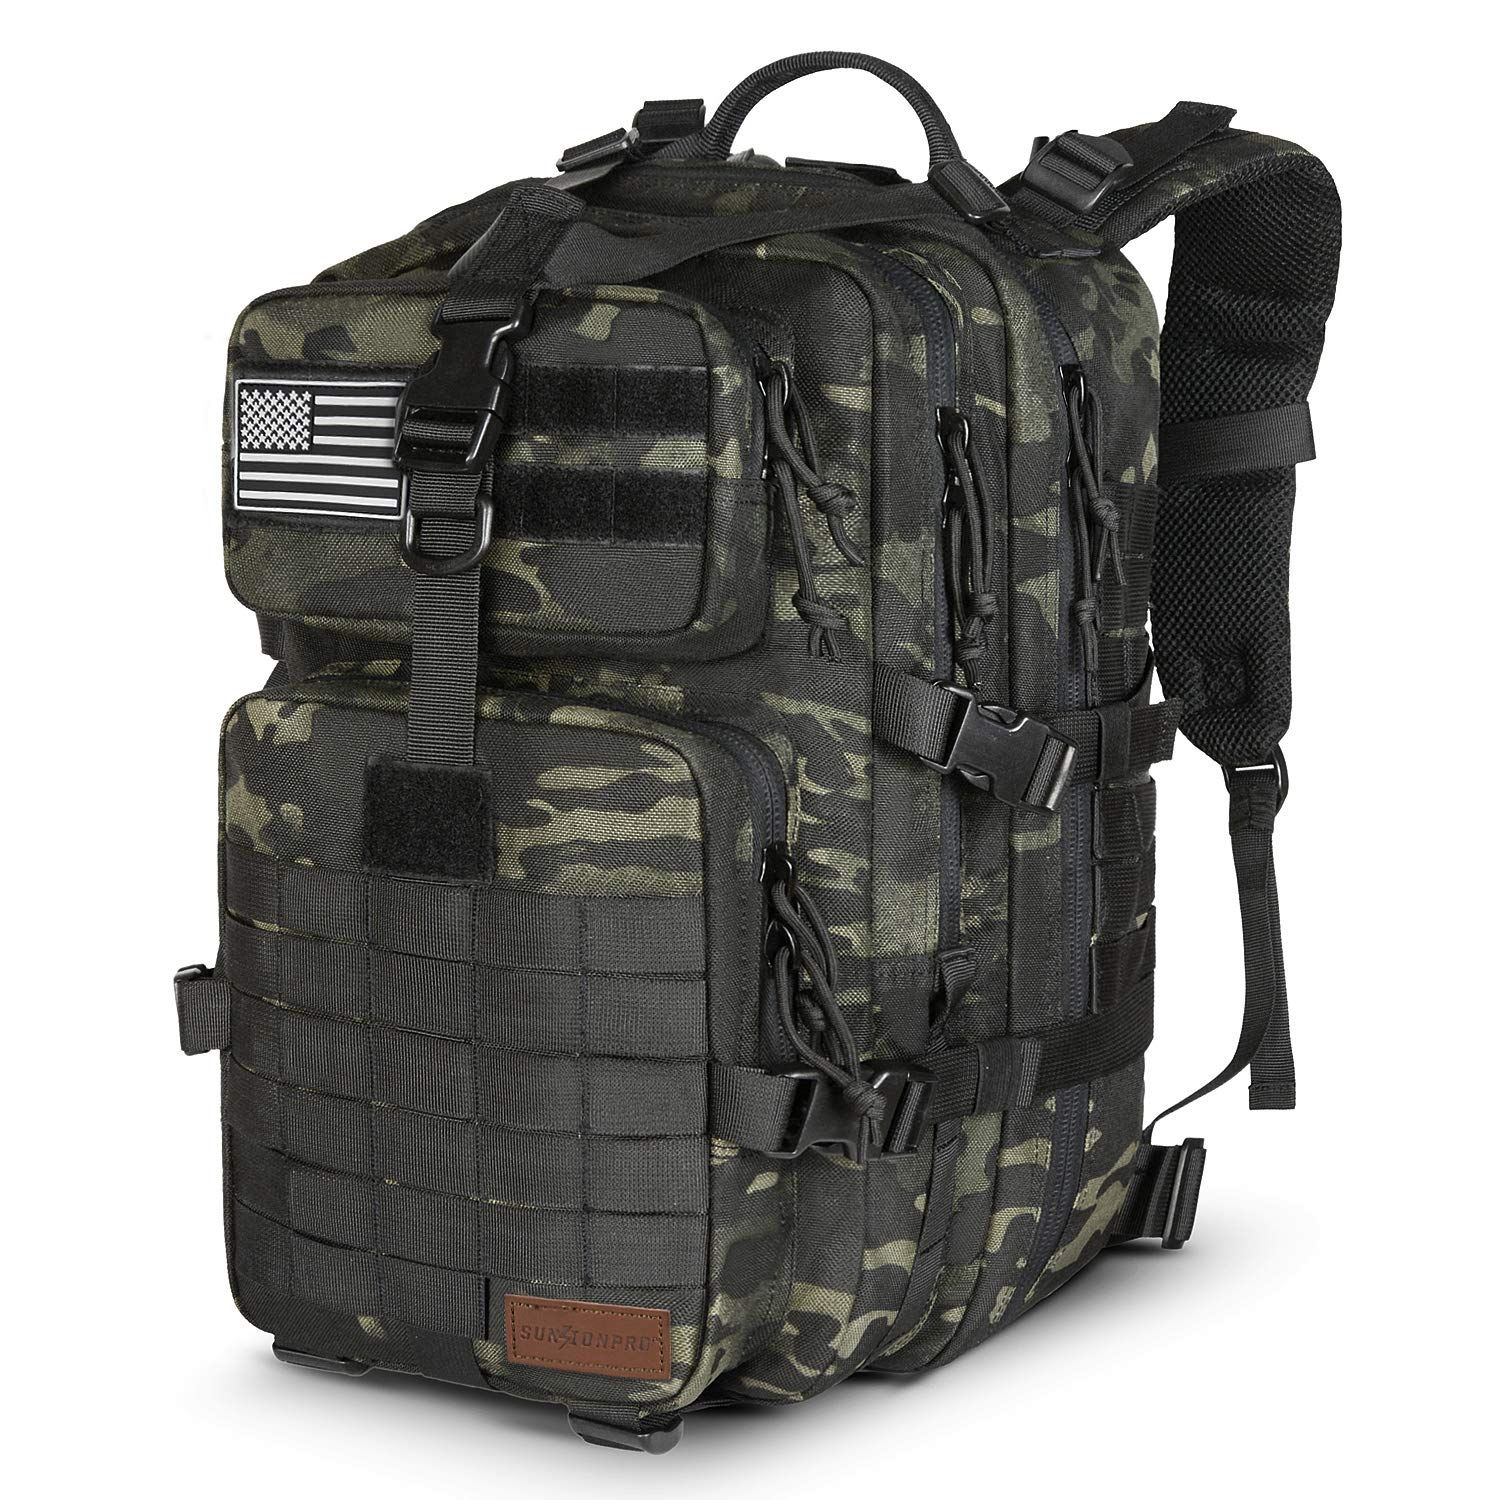 SunsionPro MTB-231 Military Tactical Backpack Large Army 3 Day Assault Pack Molle Bag Travel Rucksacks for Outdoor Hiking Camping Trekking Hunting, 43L (Black Multicam)